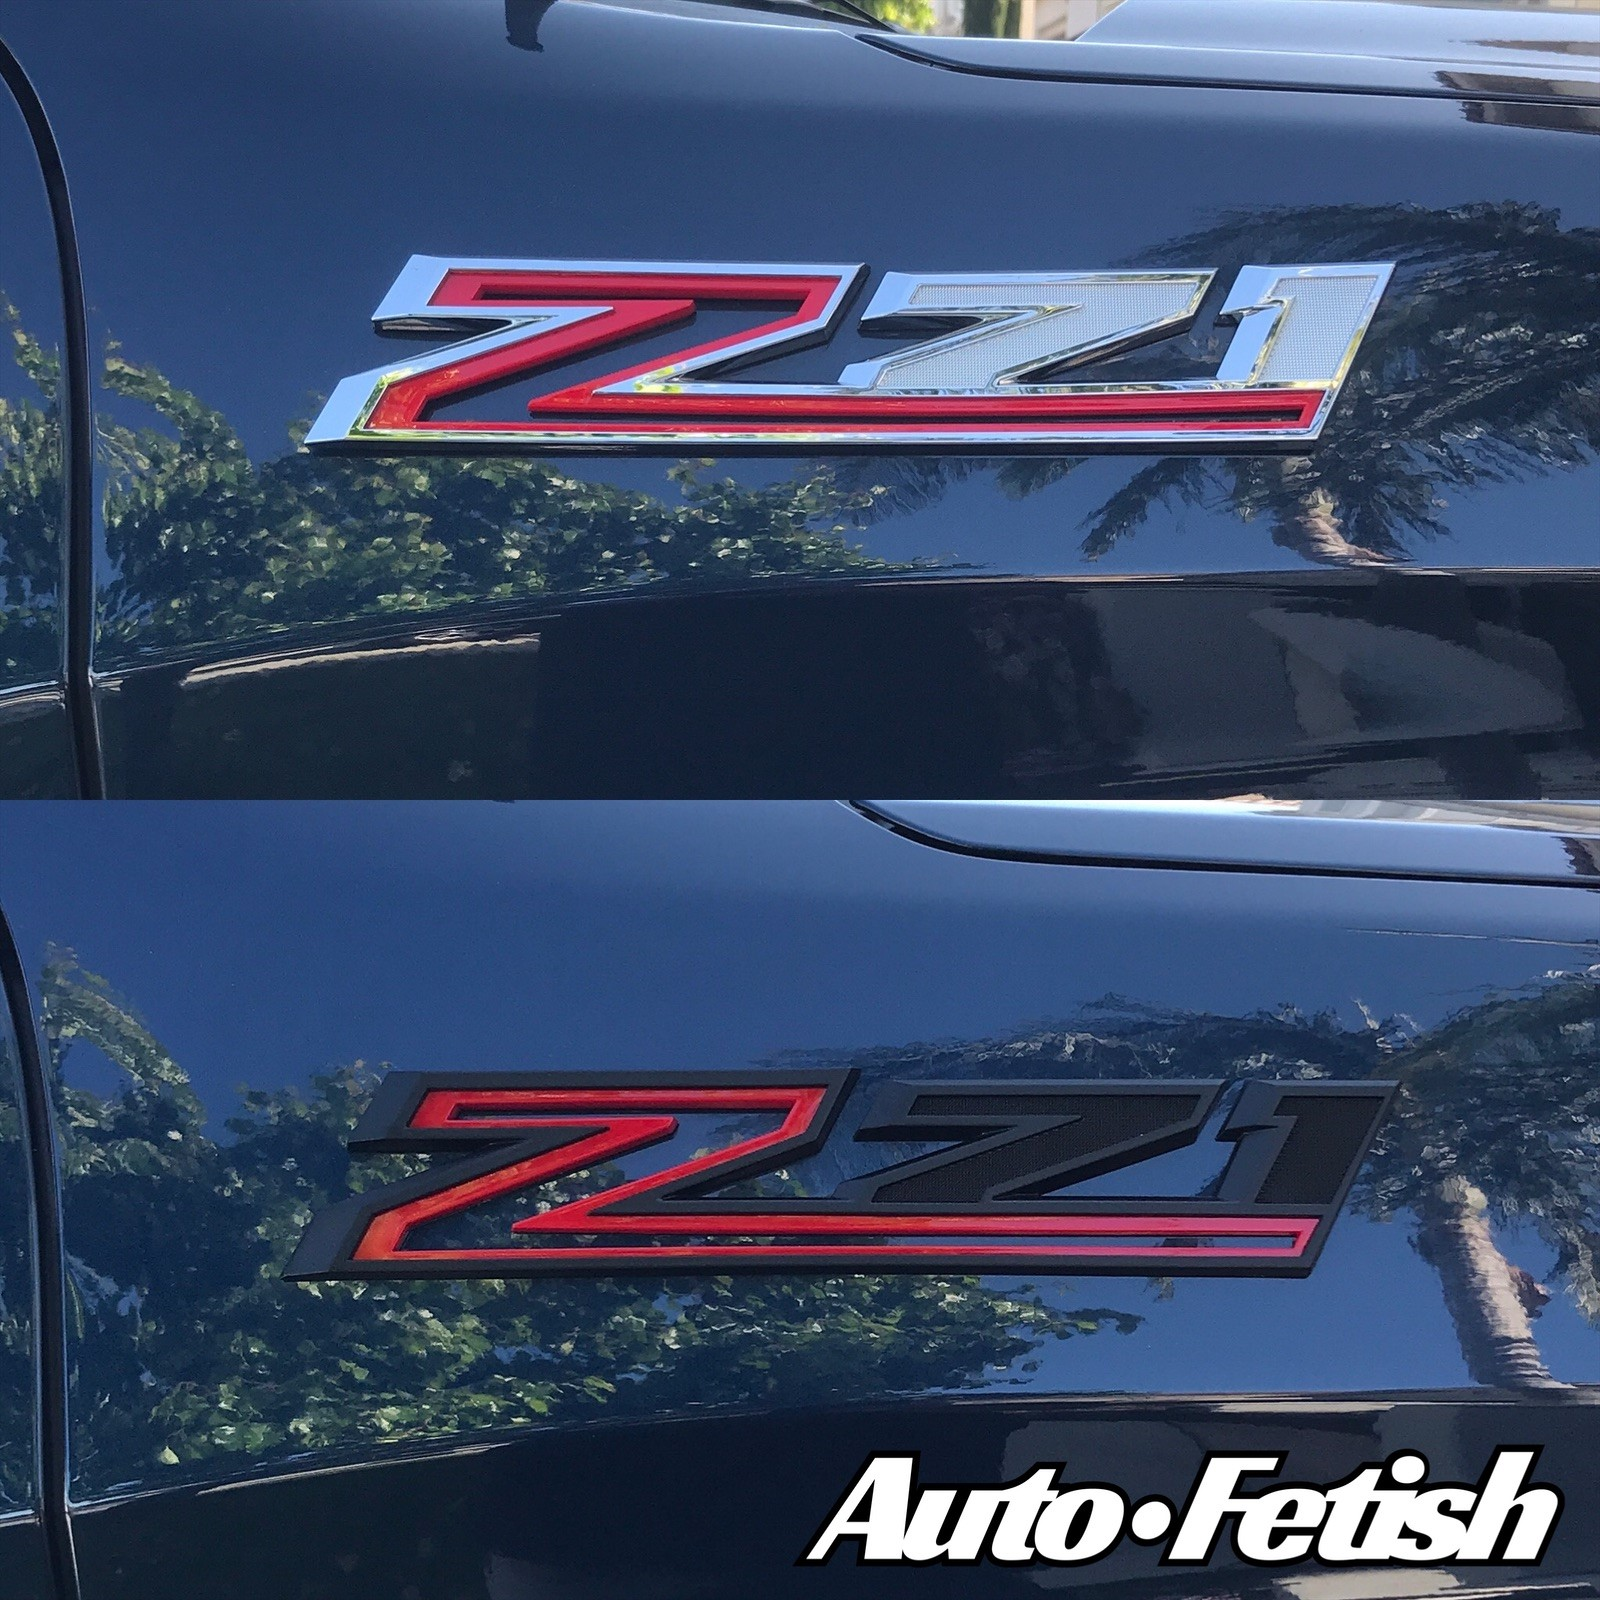 2020 Chevy Z71 truck badge replacement